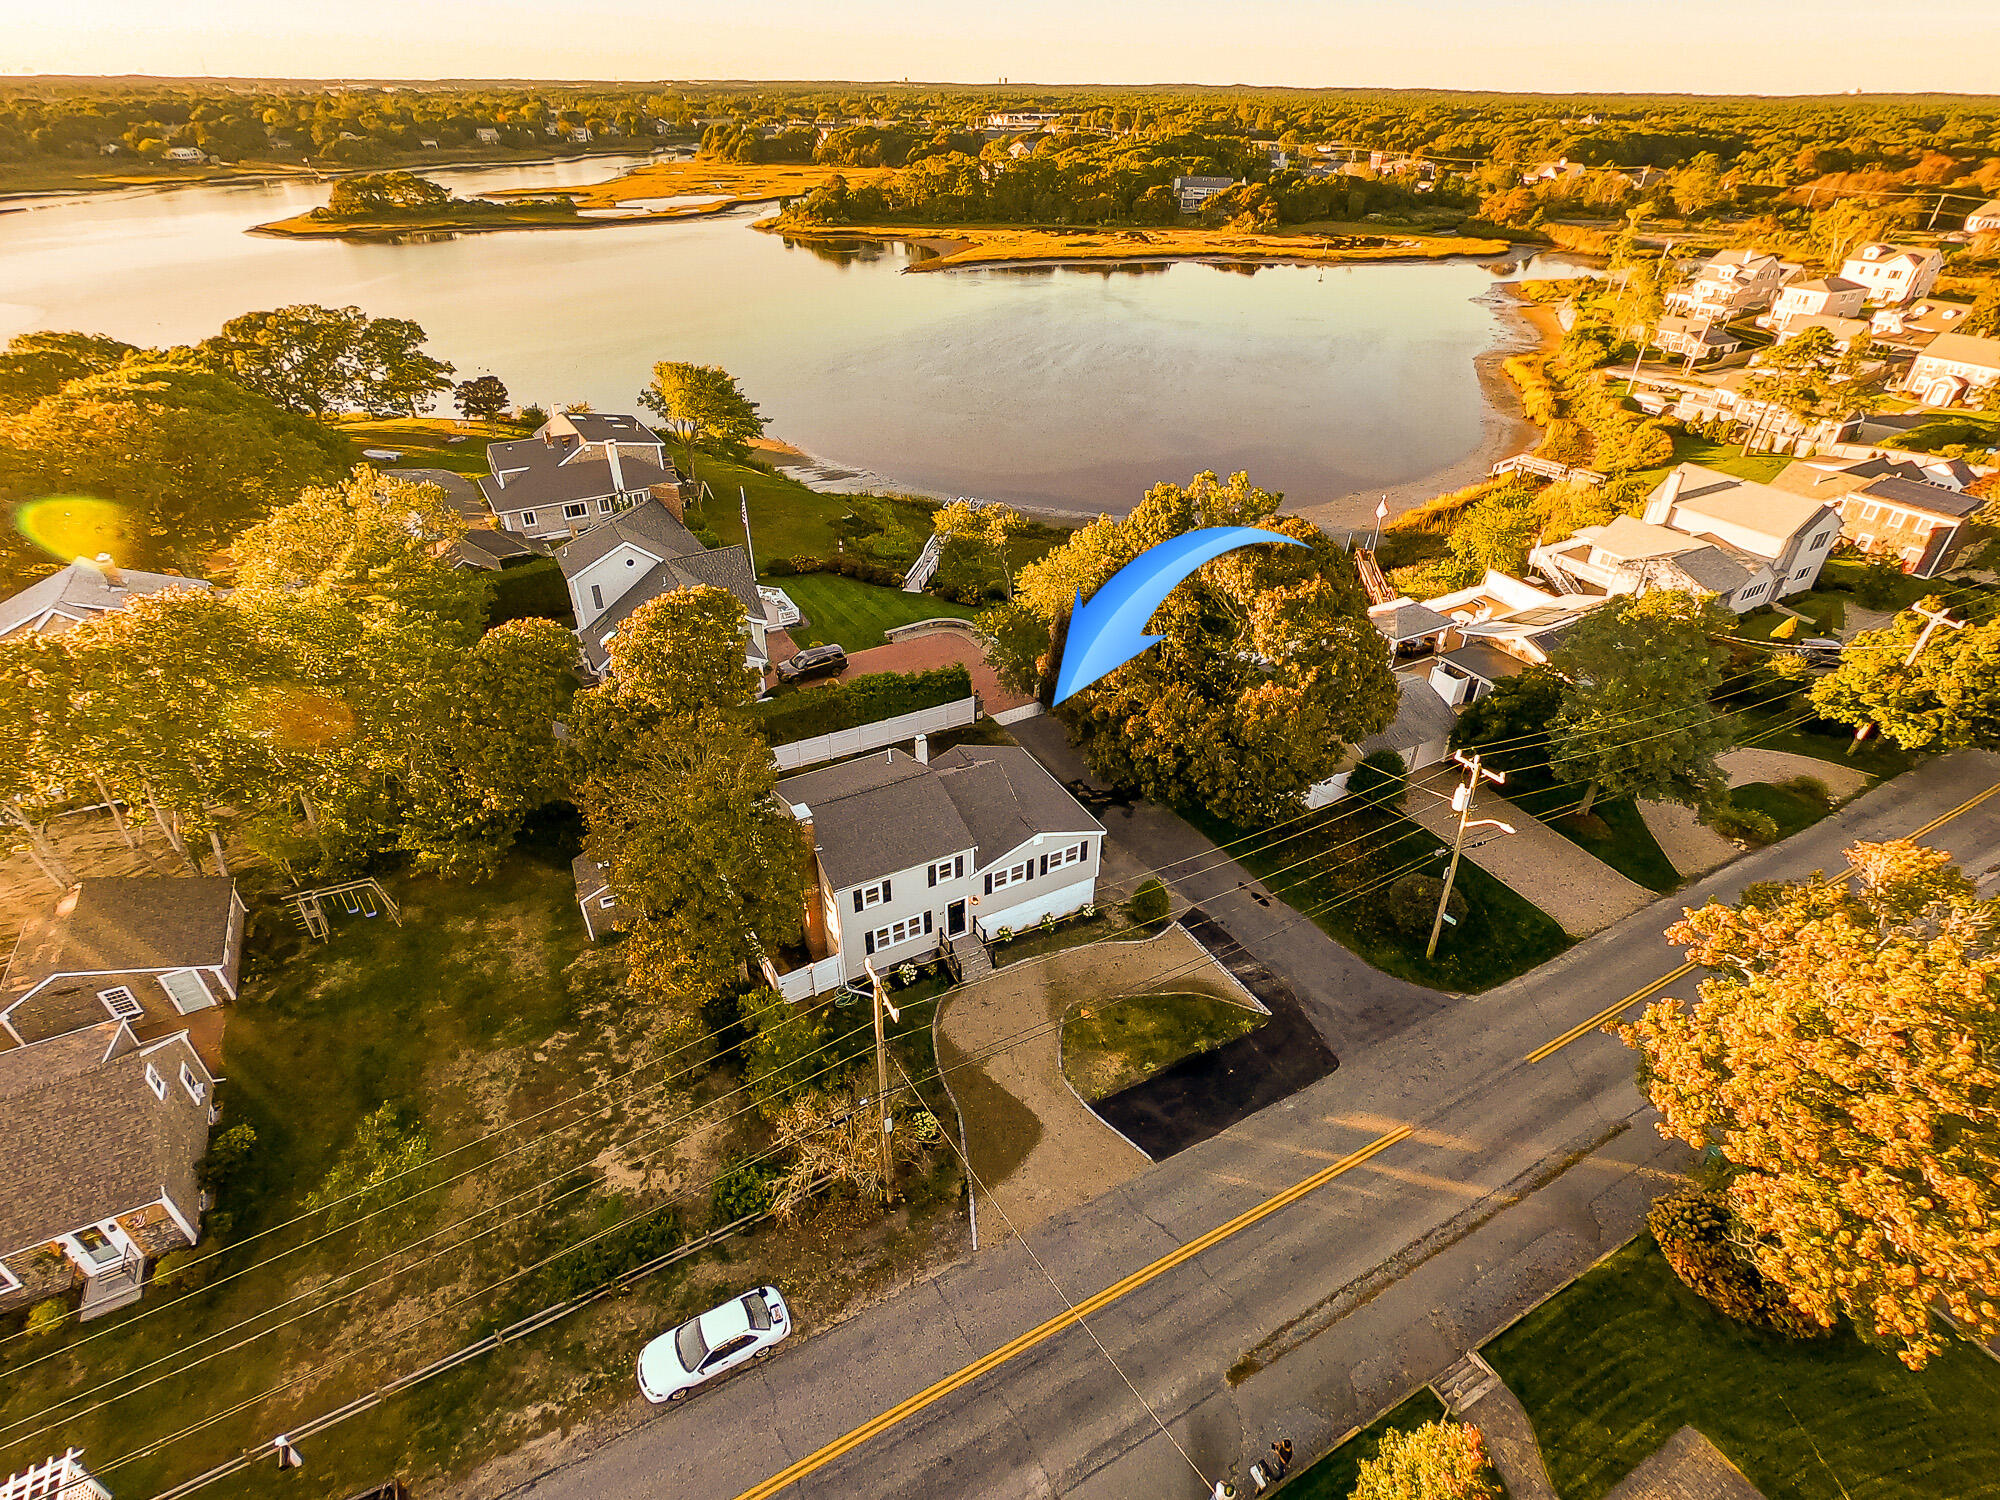 57 Standish Way, West Yarmouth MA, 02673 details